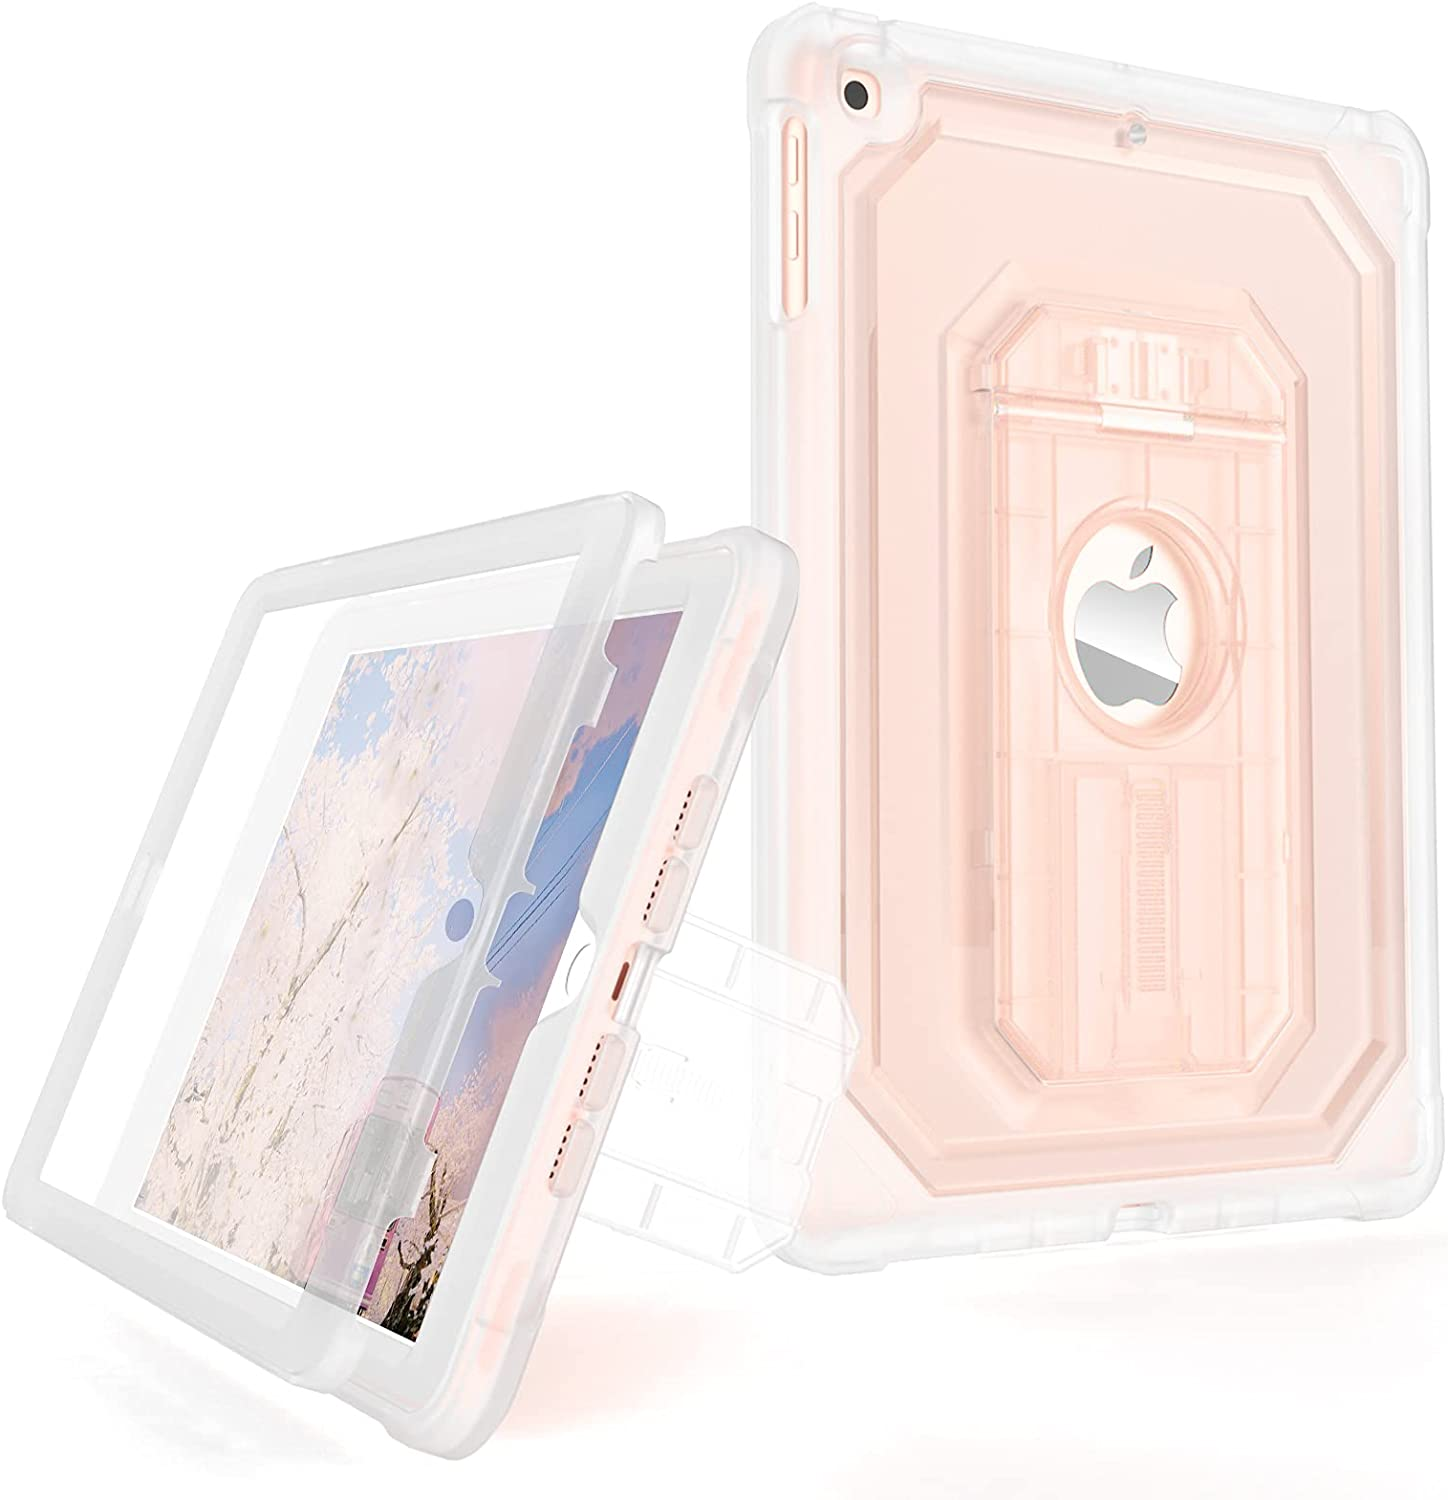 Cantis Clear Case for iPad 6th Generation / 5th Generation (9.7 Inch, 2018/2017 Model), [Built-in Screen Protector] 2-Layer Full-Body Shockproof Rugged Protective Case with Kickstand, Clear